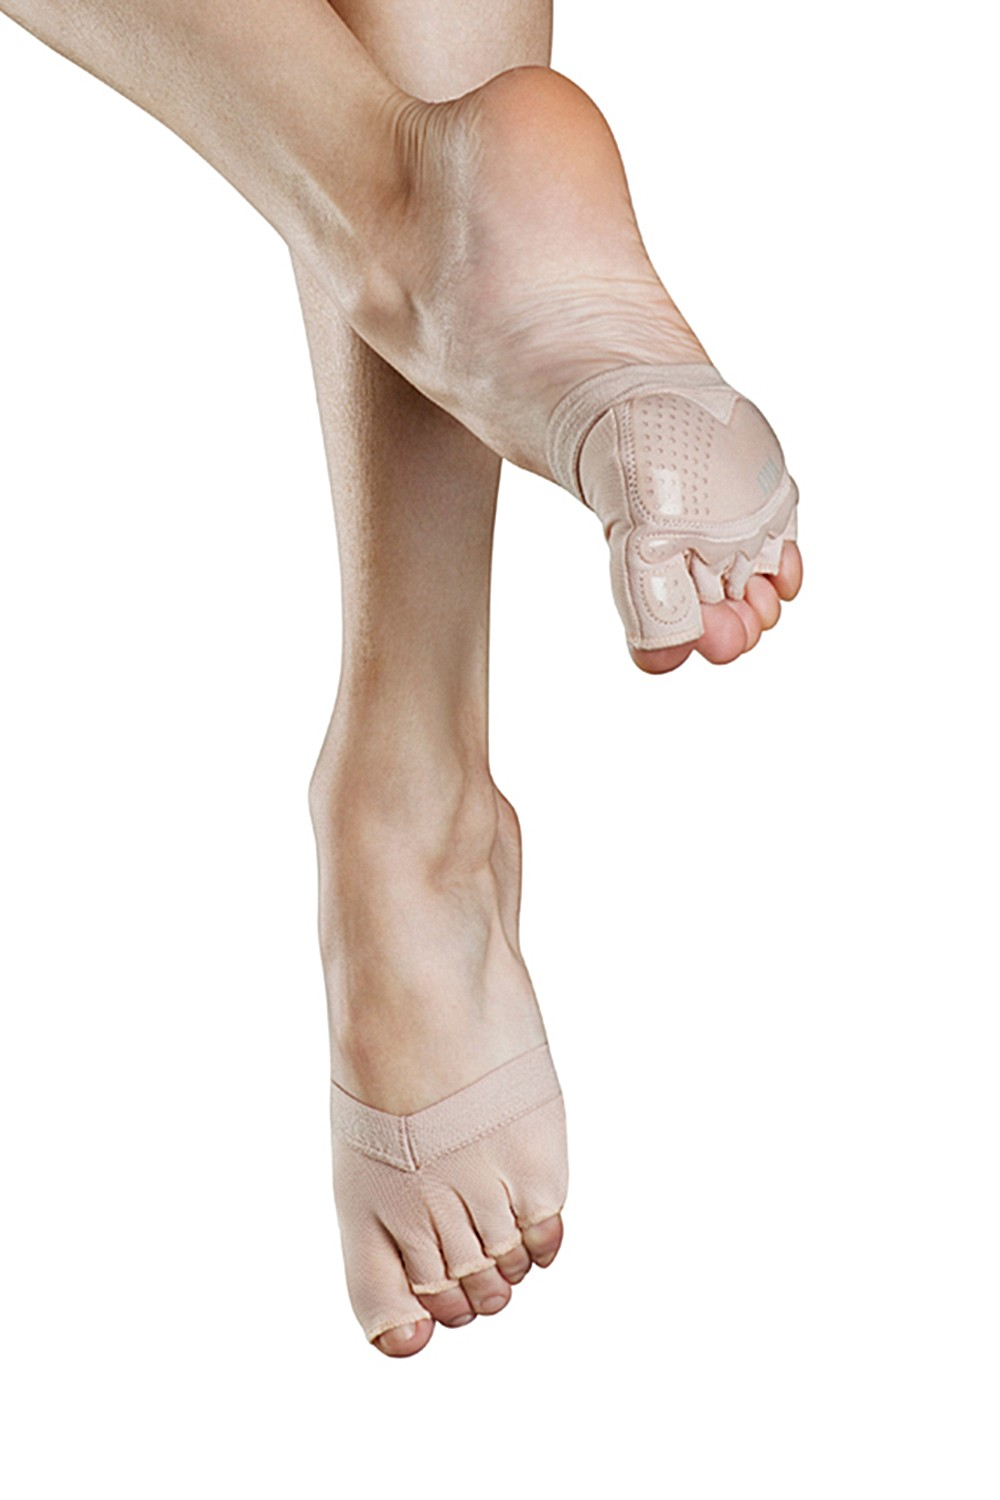 Gripp Pilates Foot Sock Women's Contemporary Dance Shoes